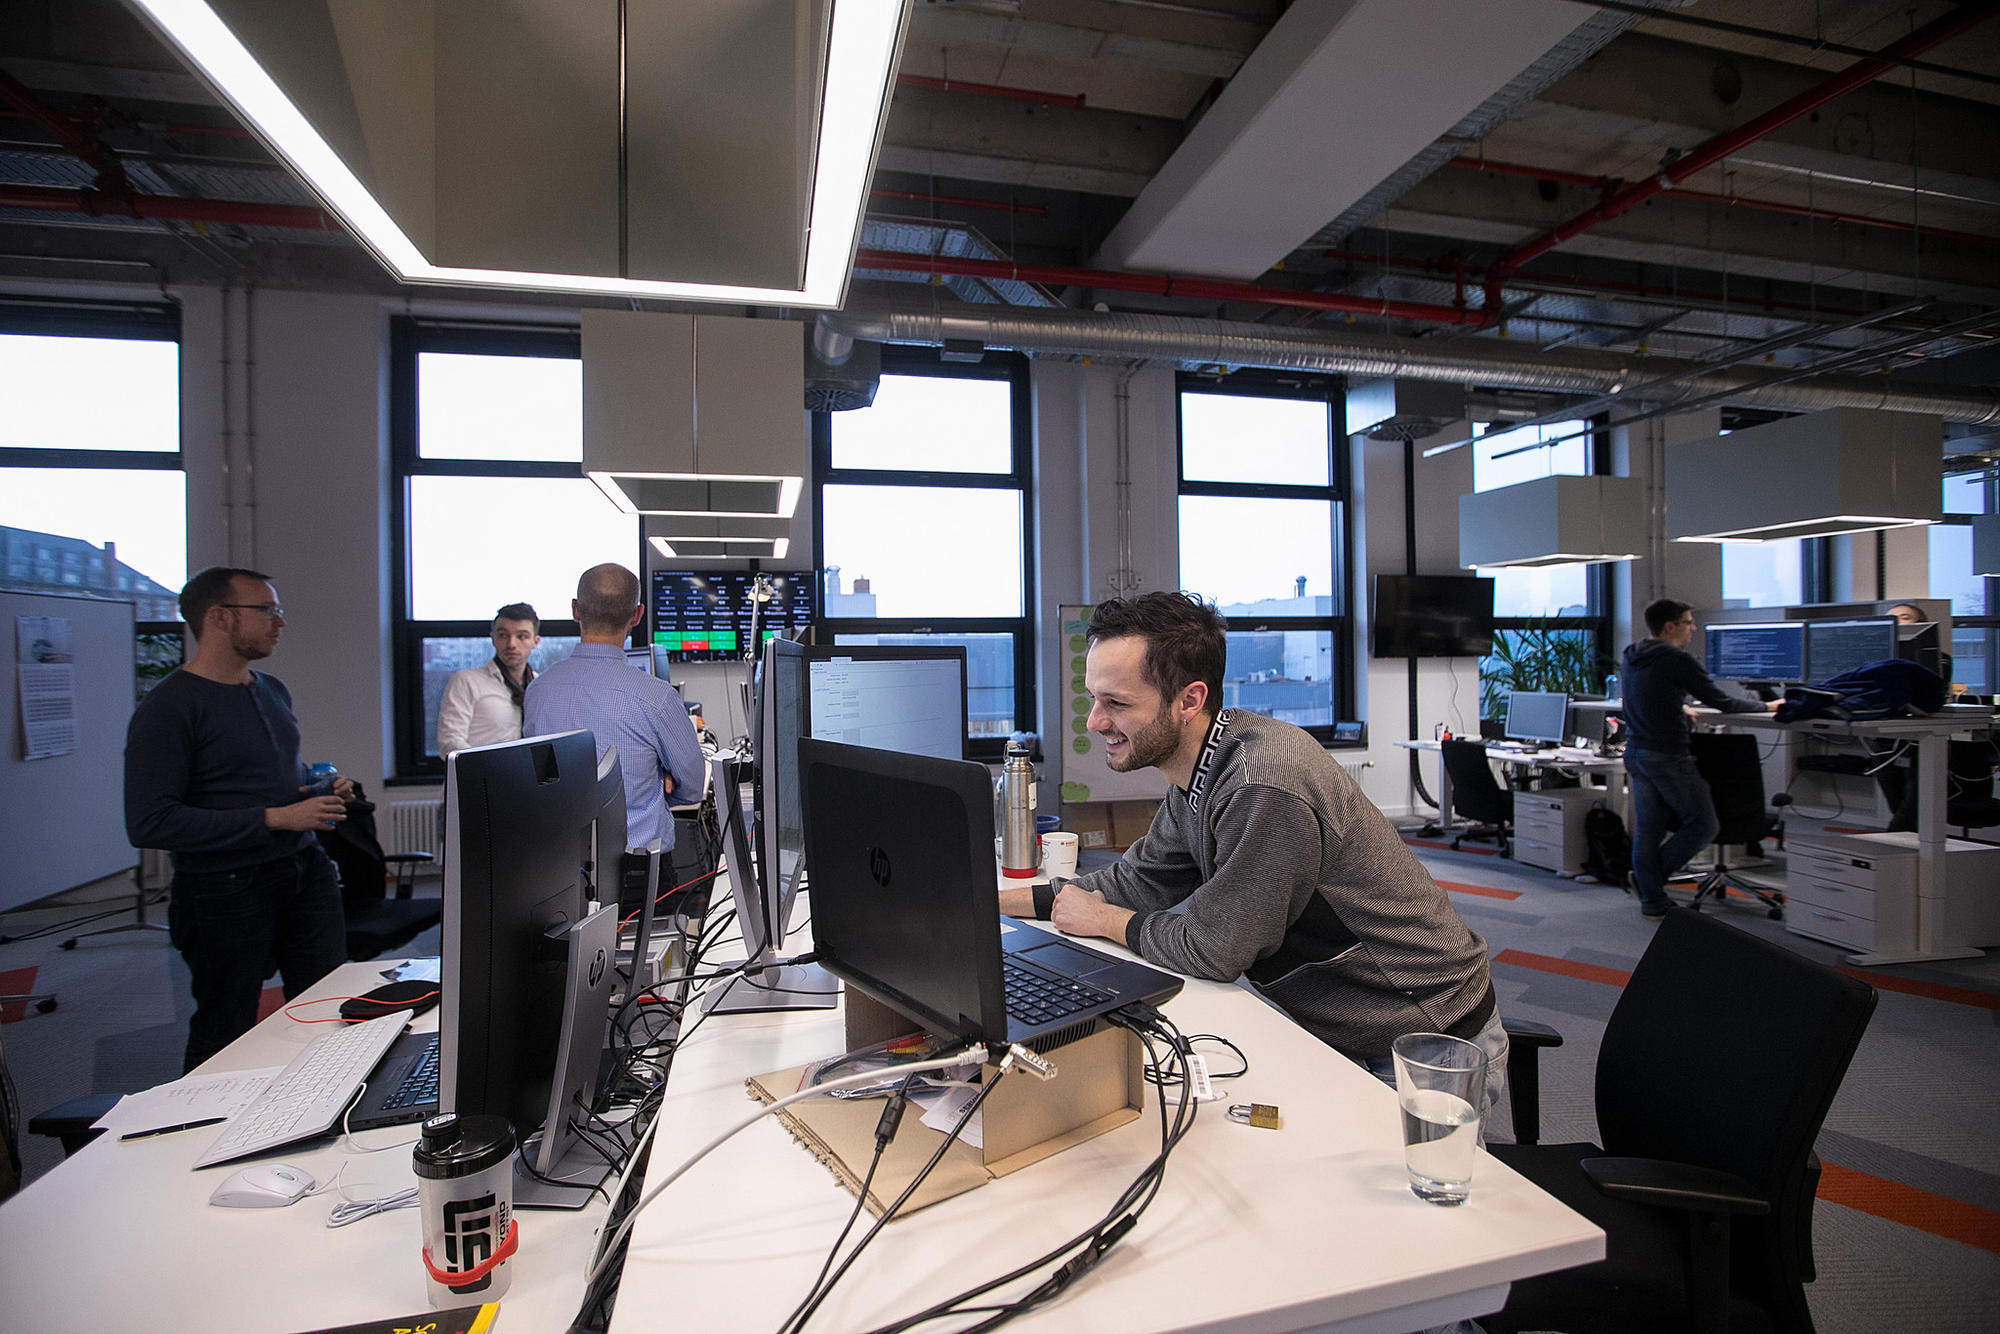 Standing Desks Could Be Harmful To Your Productivity And